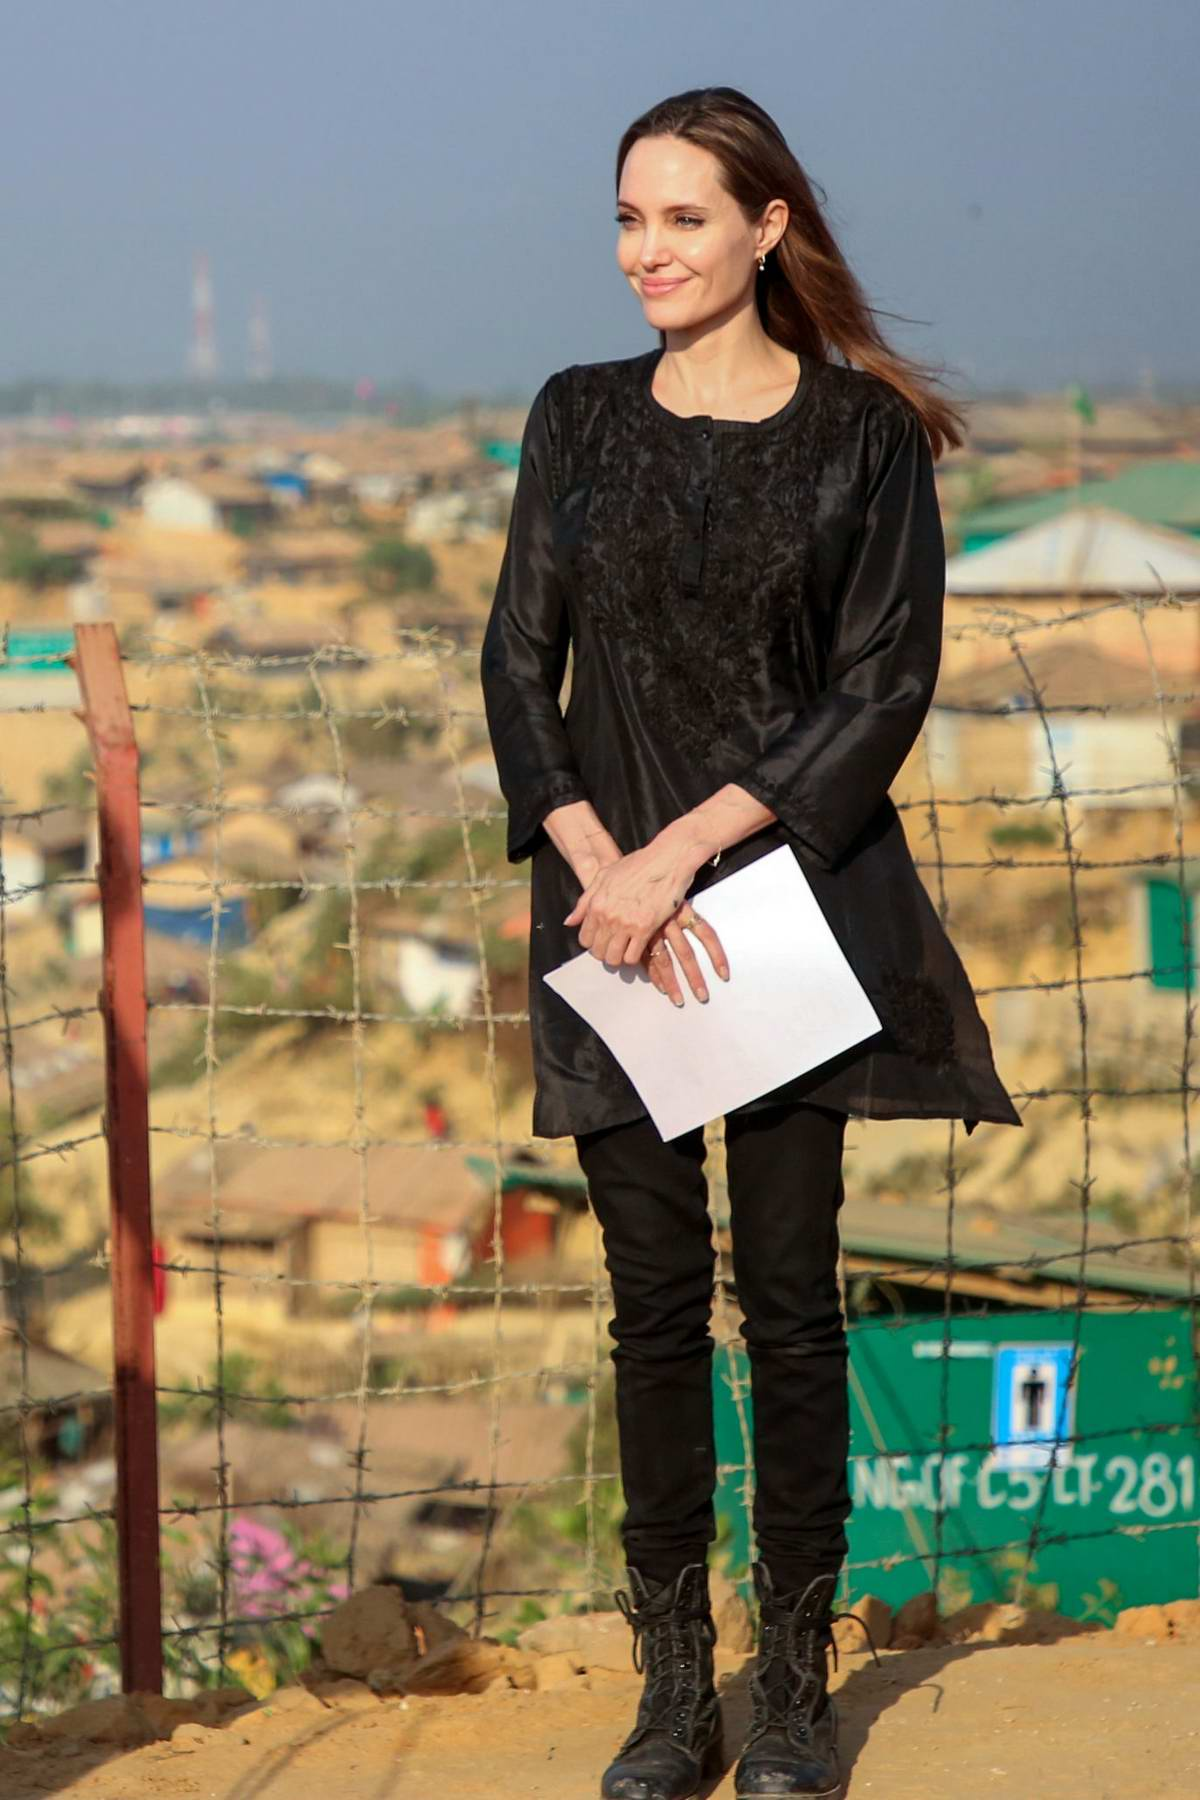 Angelina Jolie visits the UNHCR special envoy to Kutupalong Rohingya refugee camp in Bangladesh